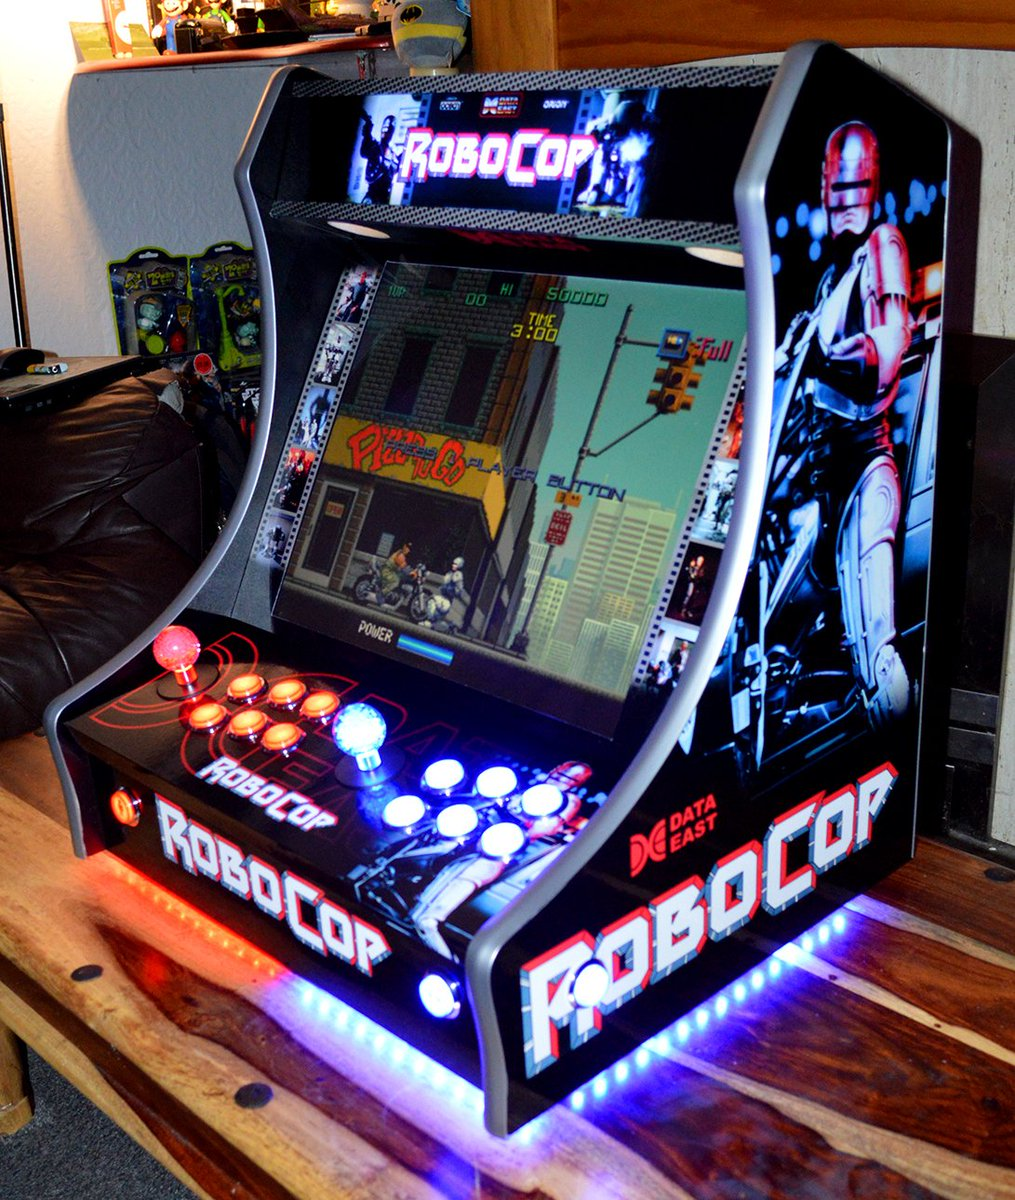 com forums machine doxcadecom in topic cabinet hlfpjfx review centipede themed bartop arcade doxcade custom